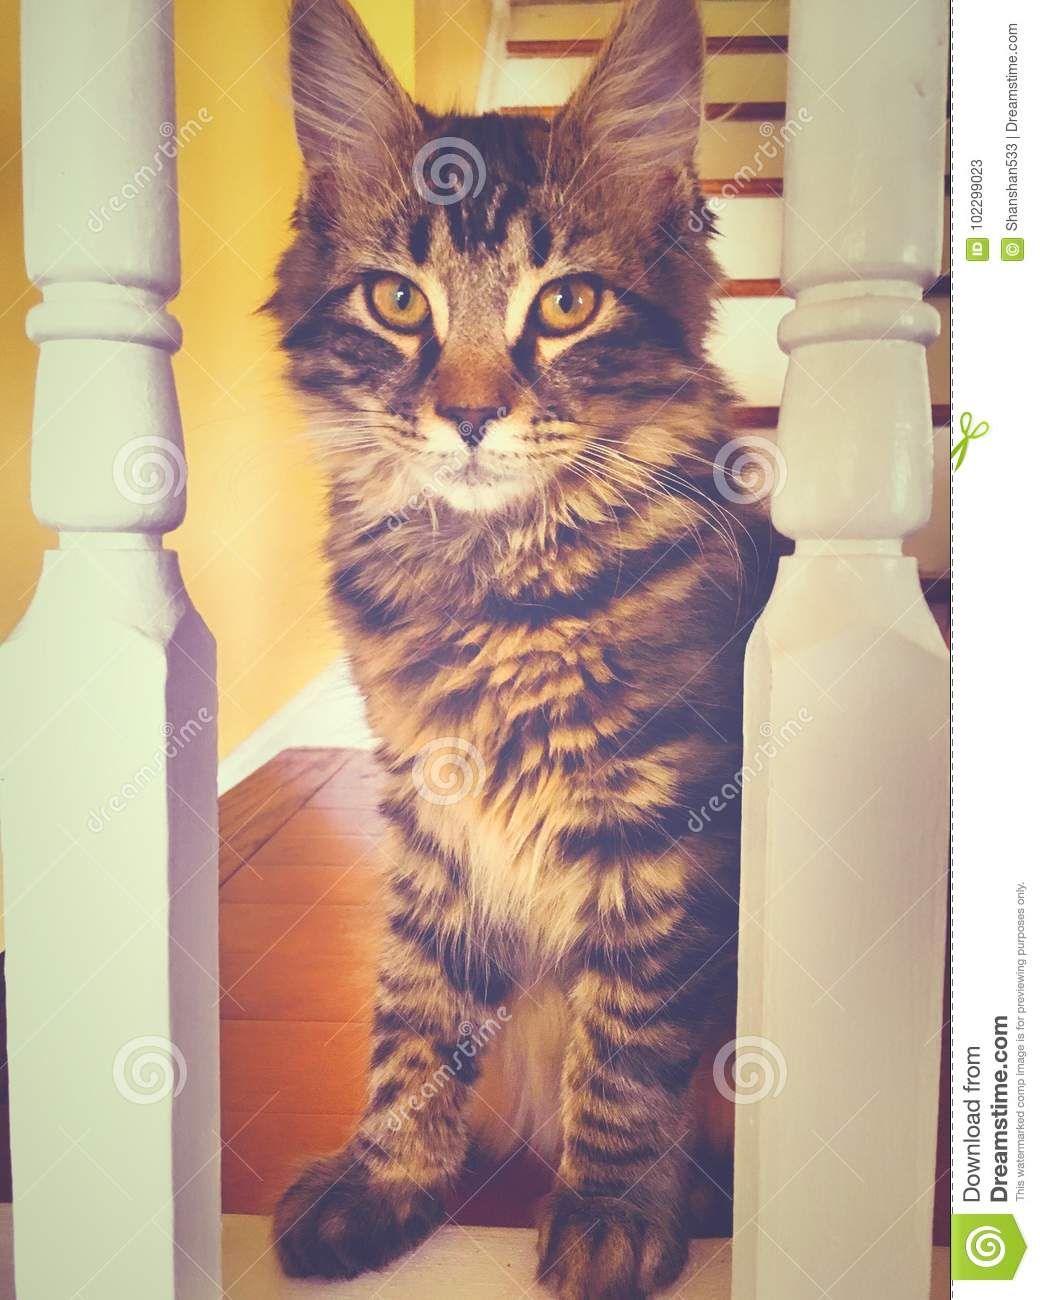 A Maine Coon Kitten Cat Staring Stock Image - Image of black